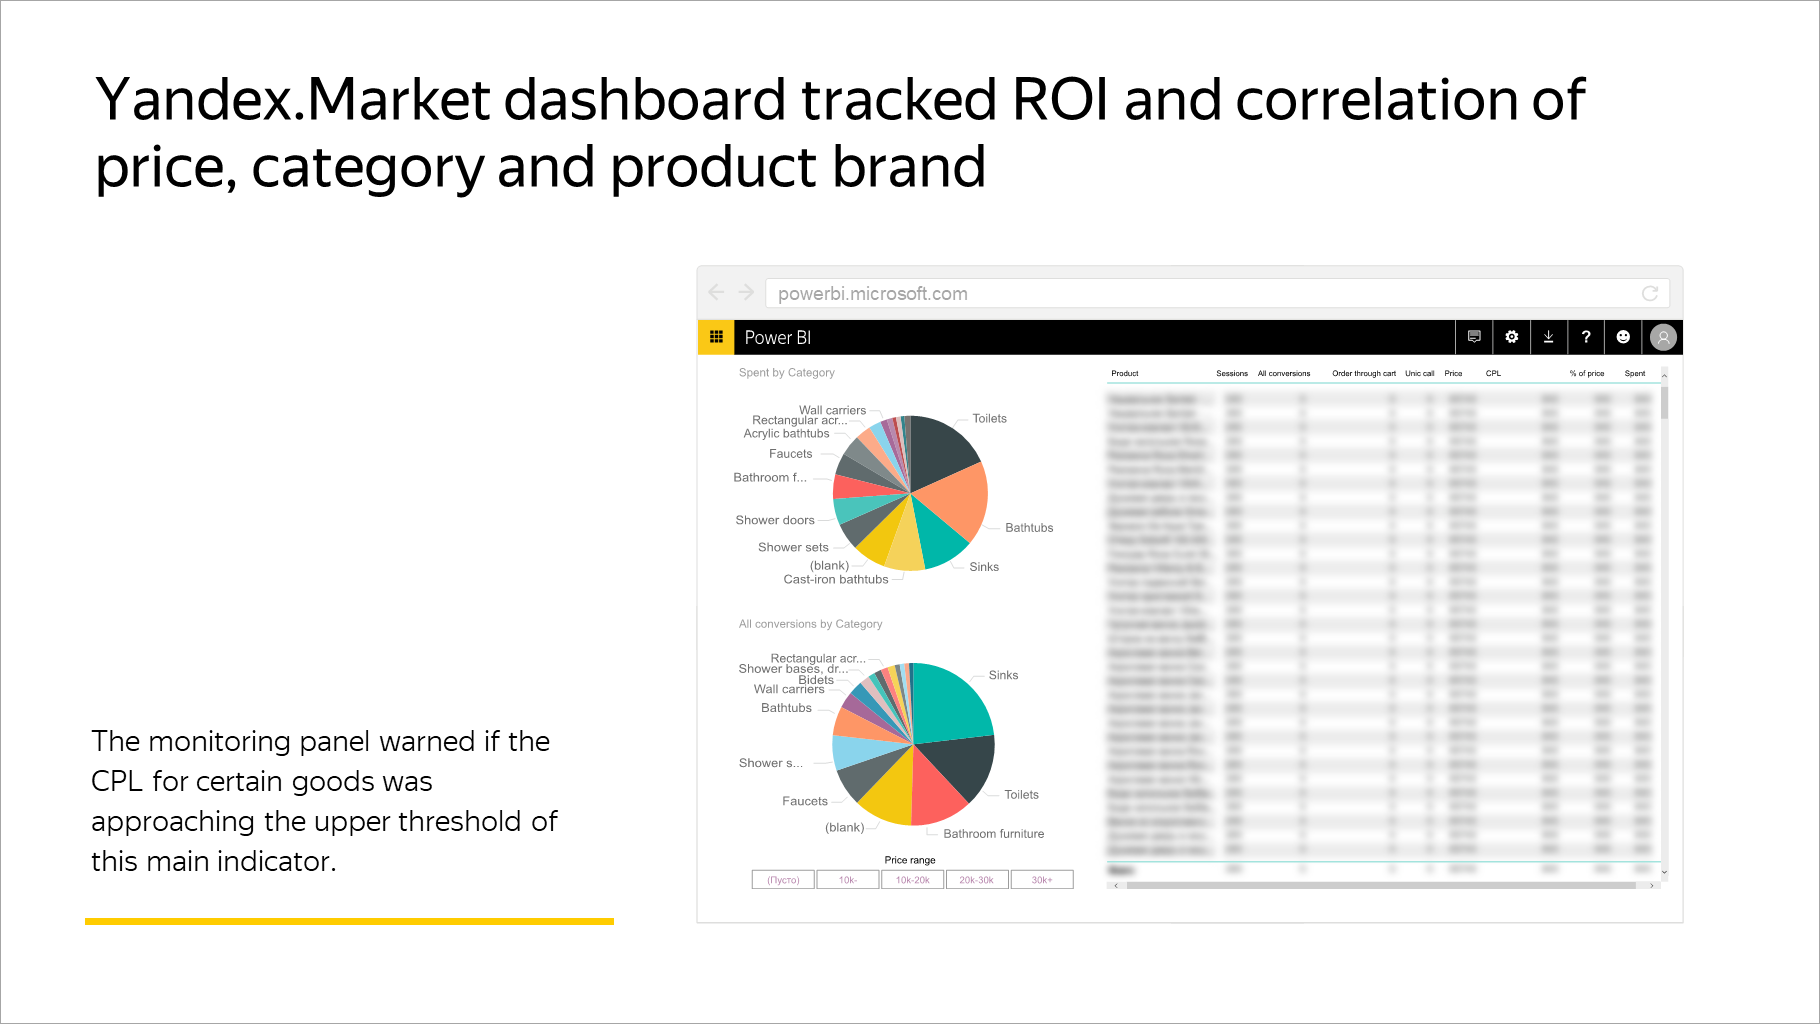 Yandex.Market dashboard tracked ROI and correlation of price, category and product brand